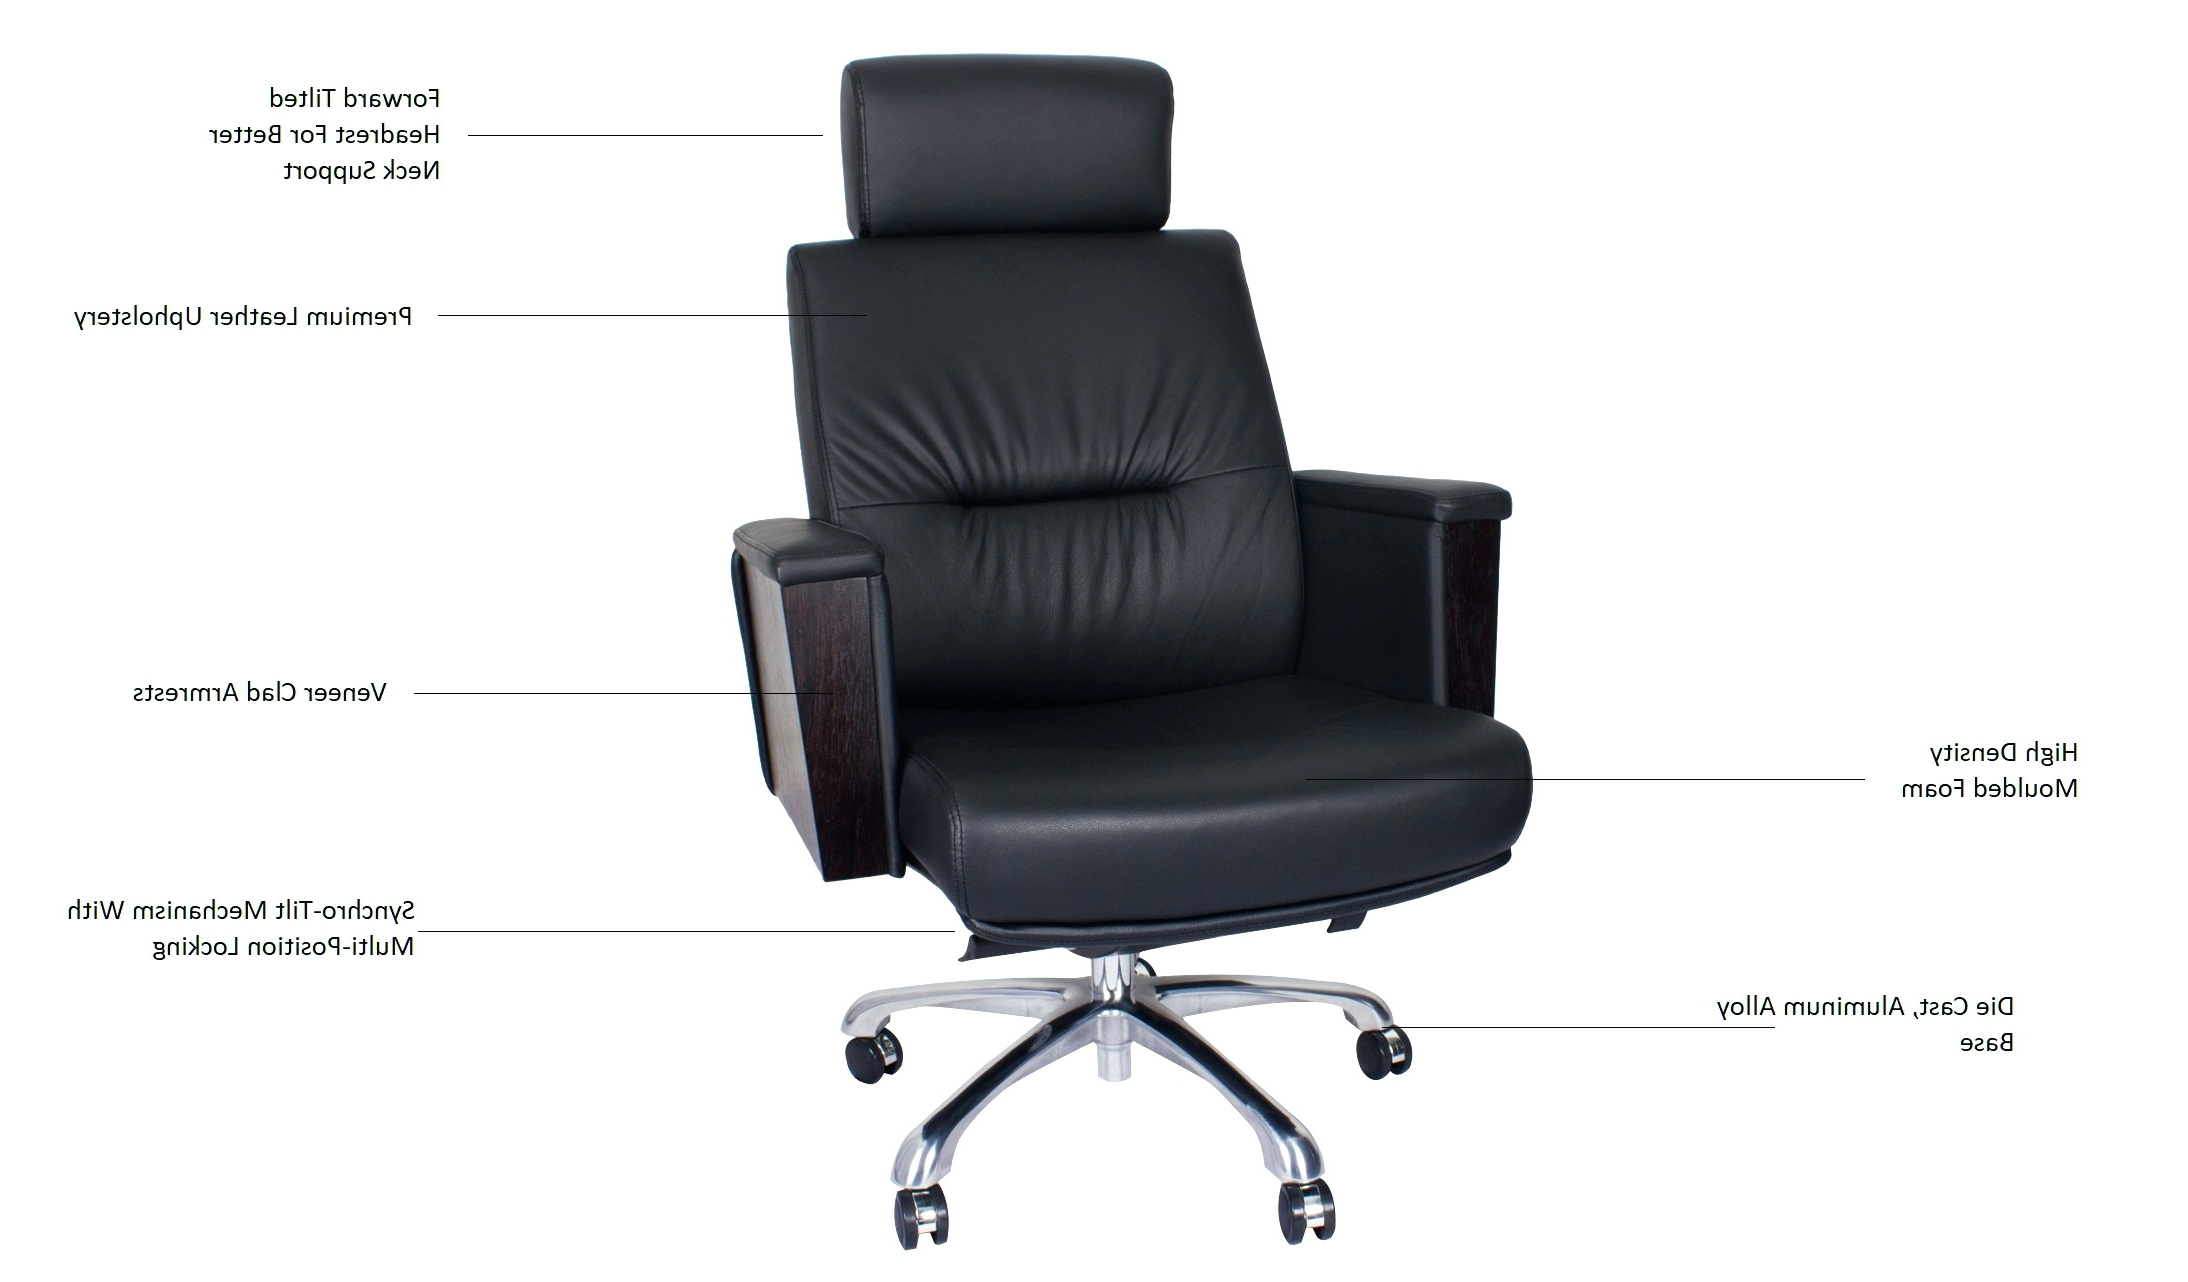 Current Premium Office Chair Aldi Aldi Premium Office Chair Review 1 1 0 With Regard To Premium Executive Office Chairs (View 9 of 20)